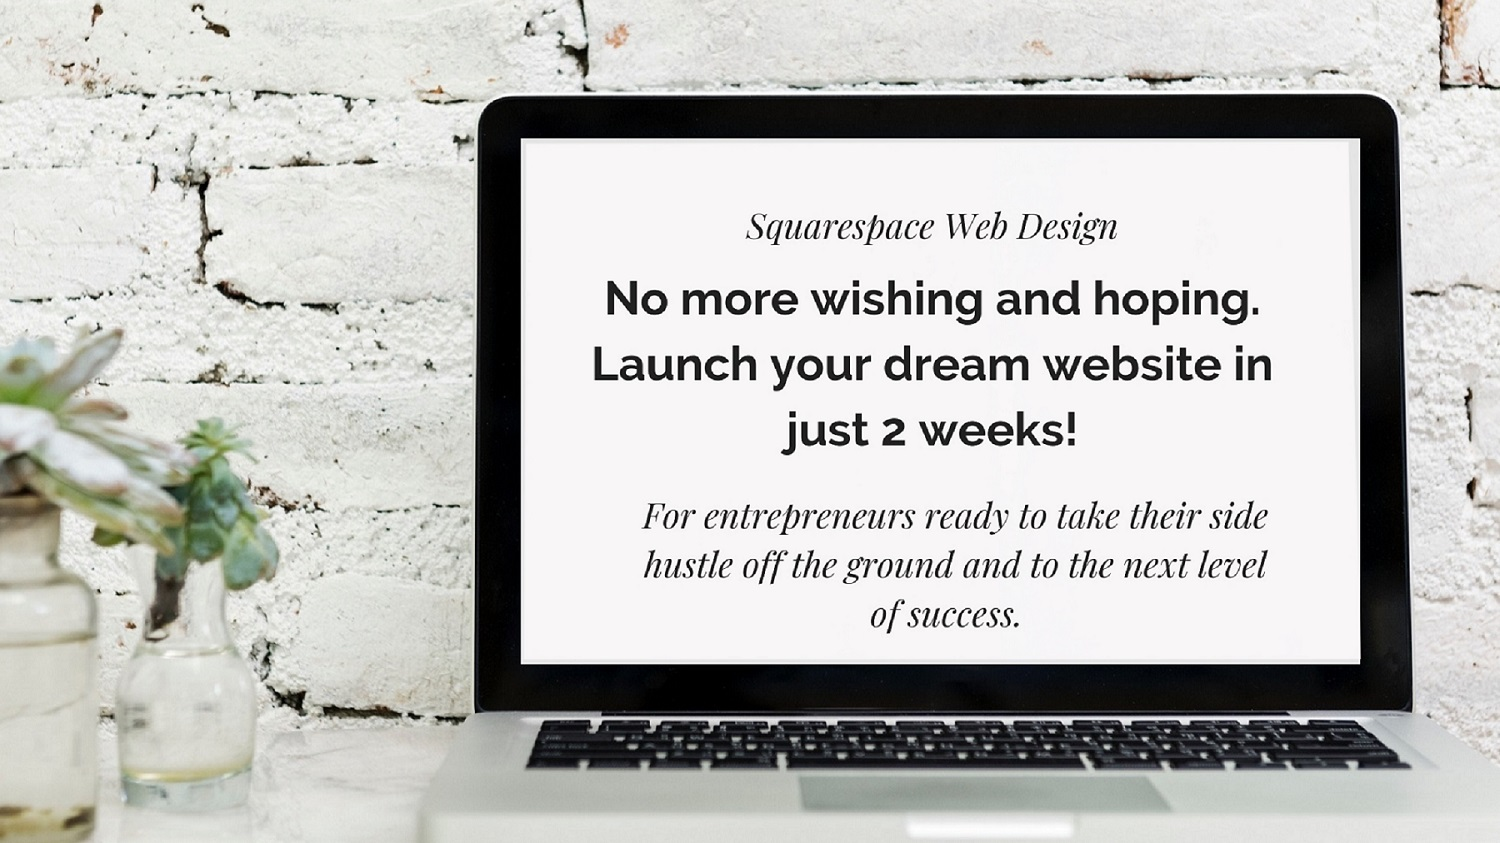 Squarespace Website Design - Get one-on-one attention from a professional web designer to create your ideal website and attract clients!